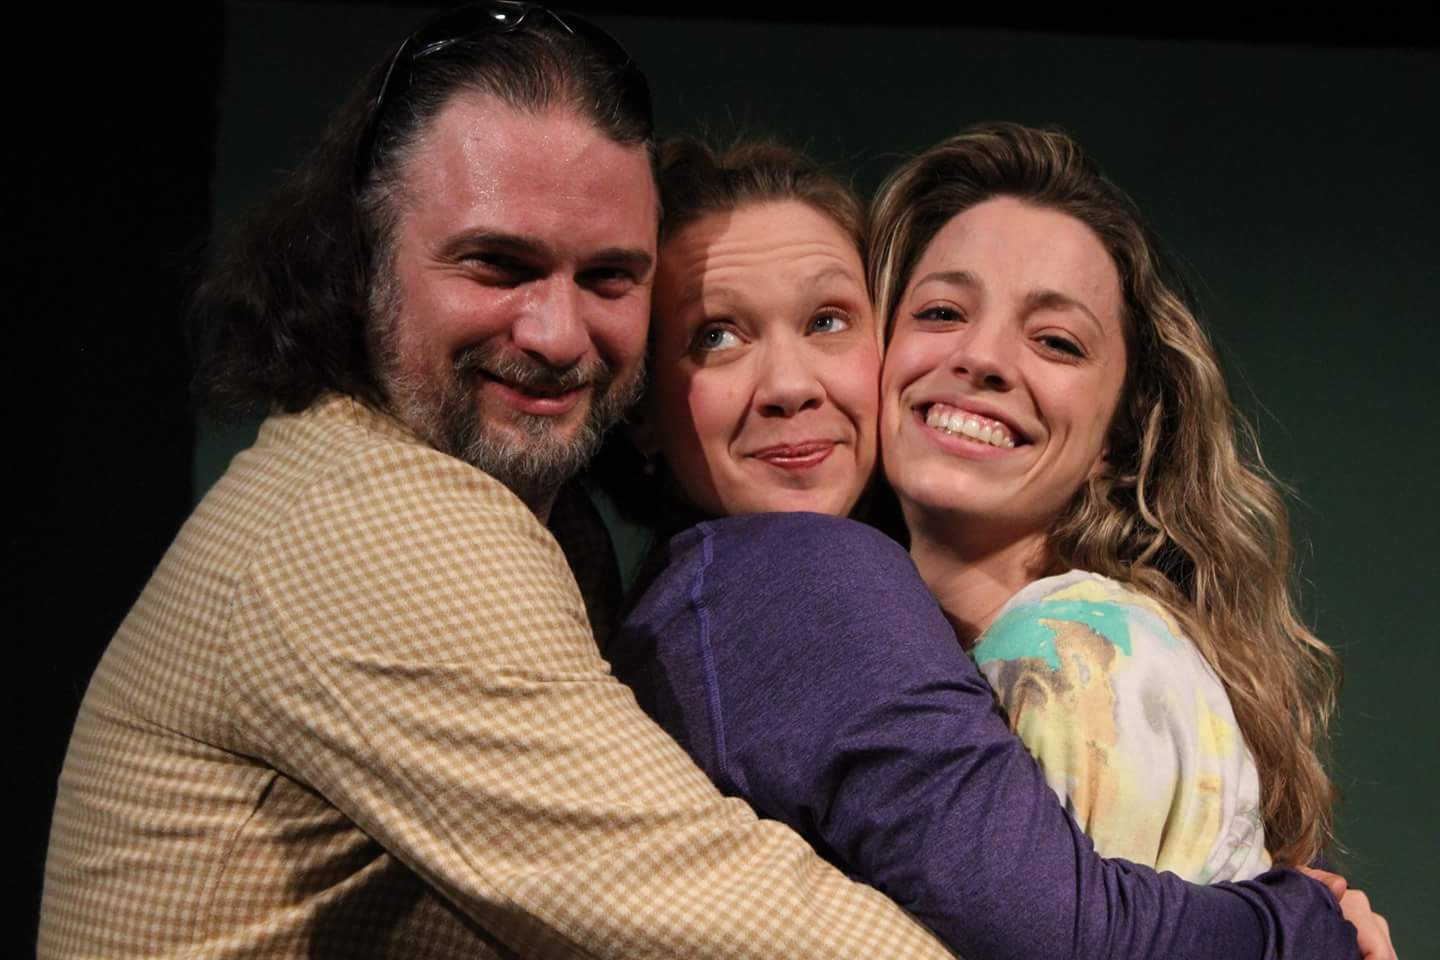 BWW Interview: Shawn Handlon of YES WEED CAN Says There Are A Lot Of Laughs To Be Had Here